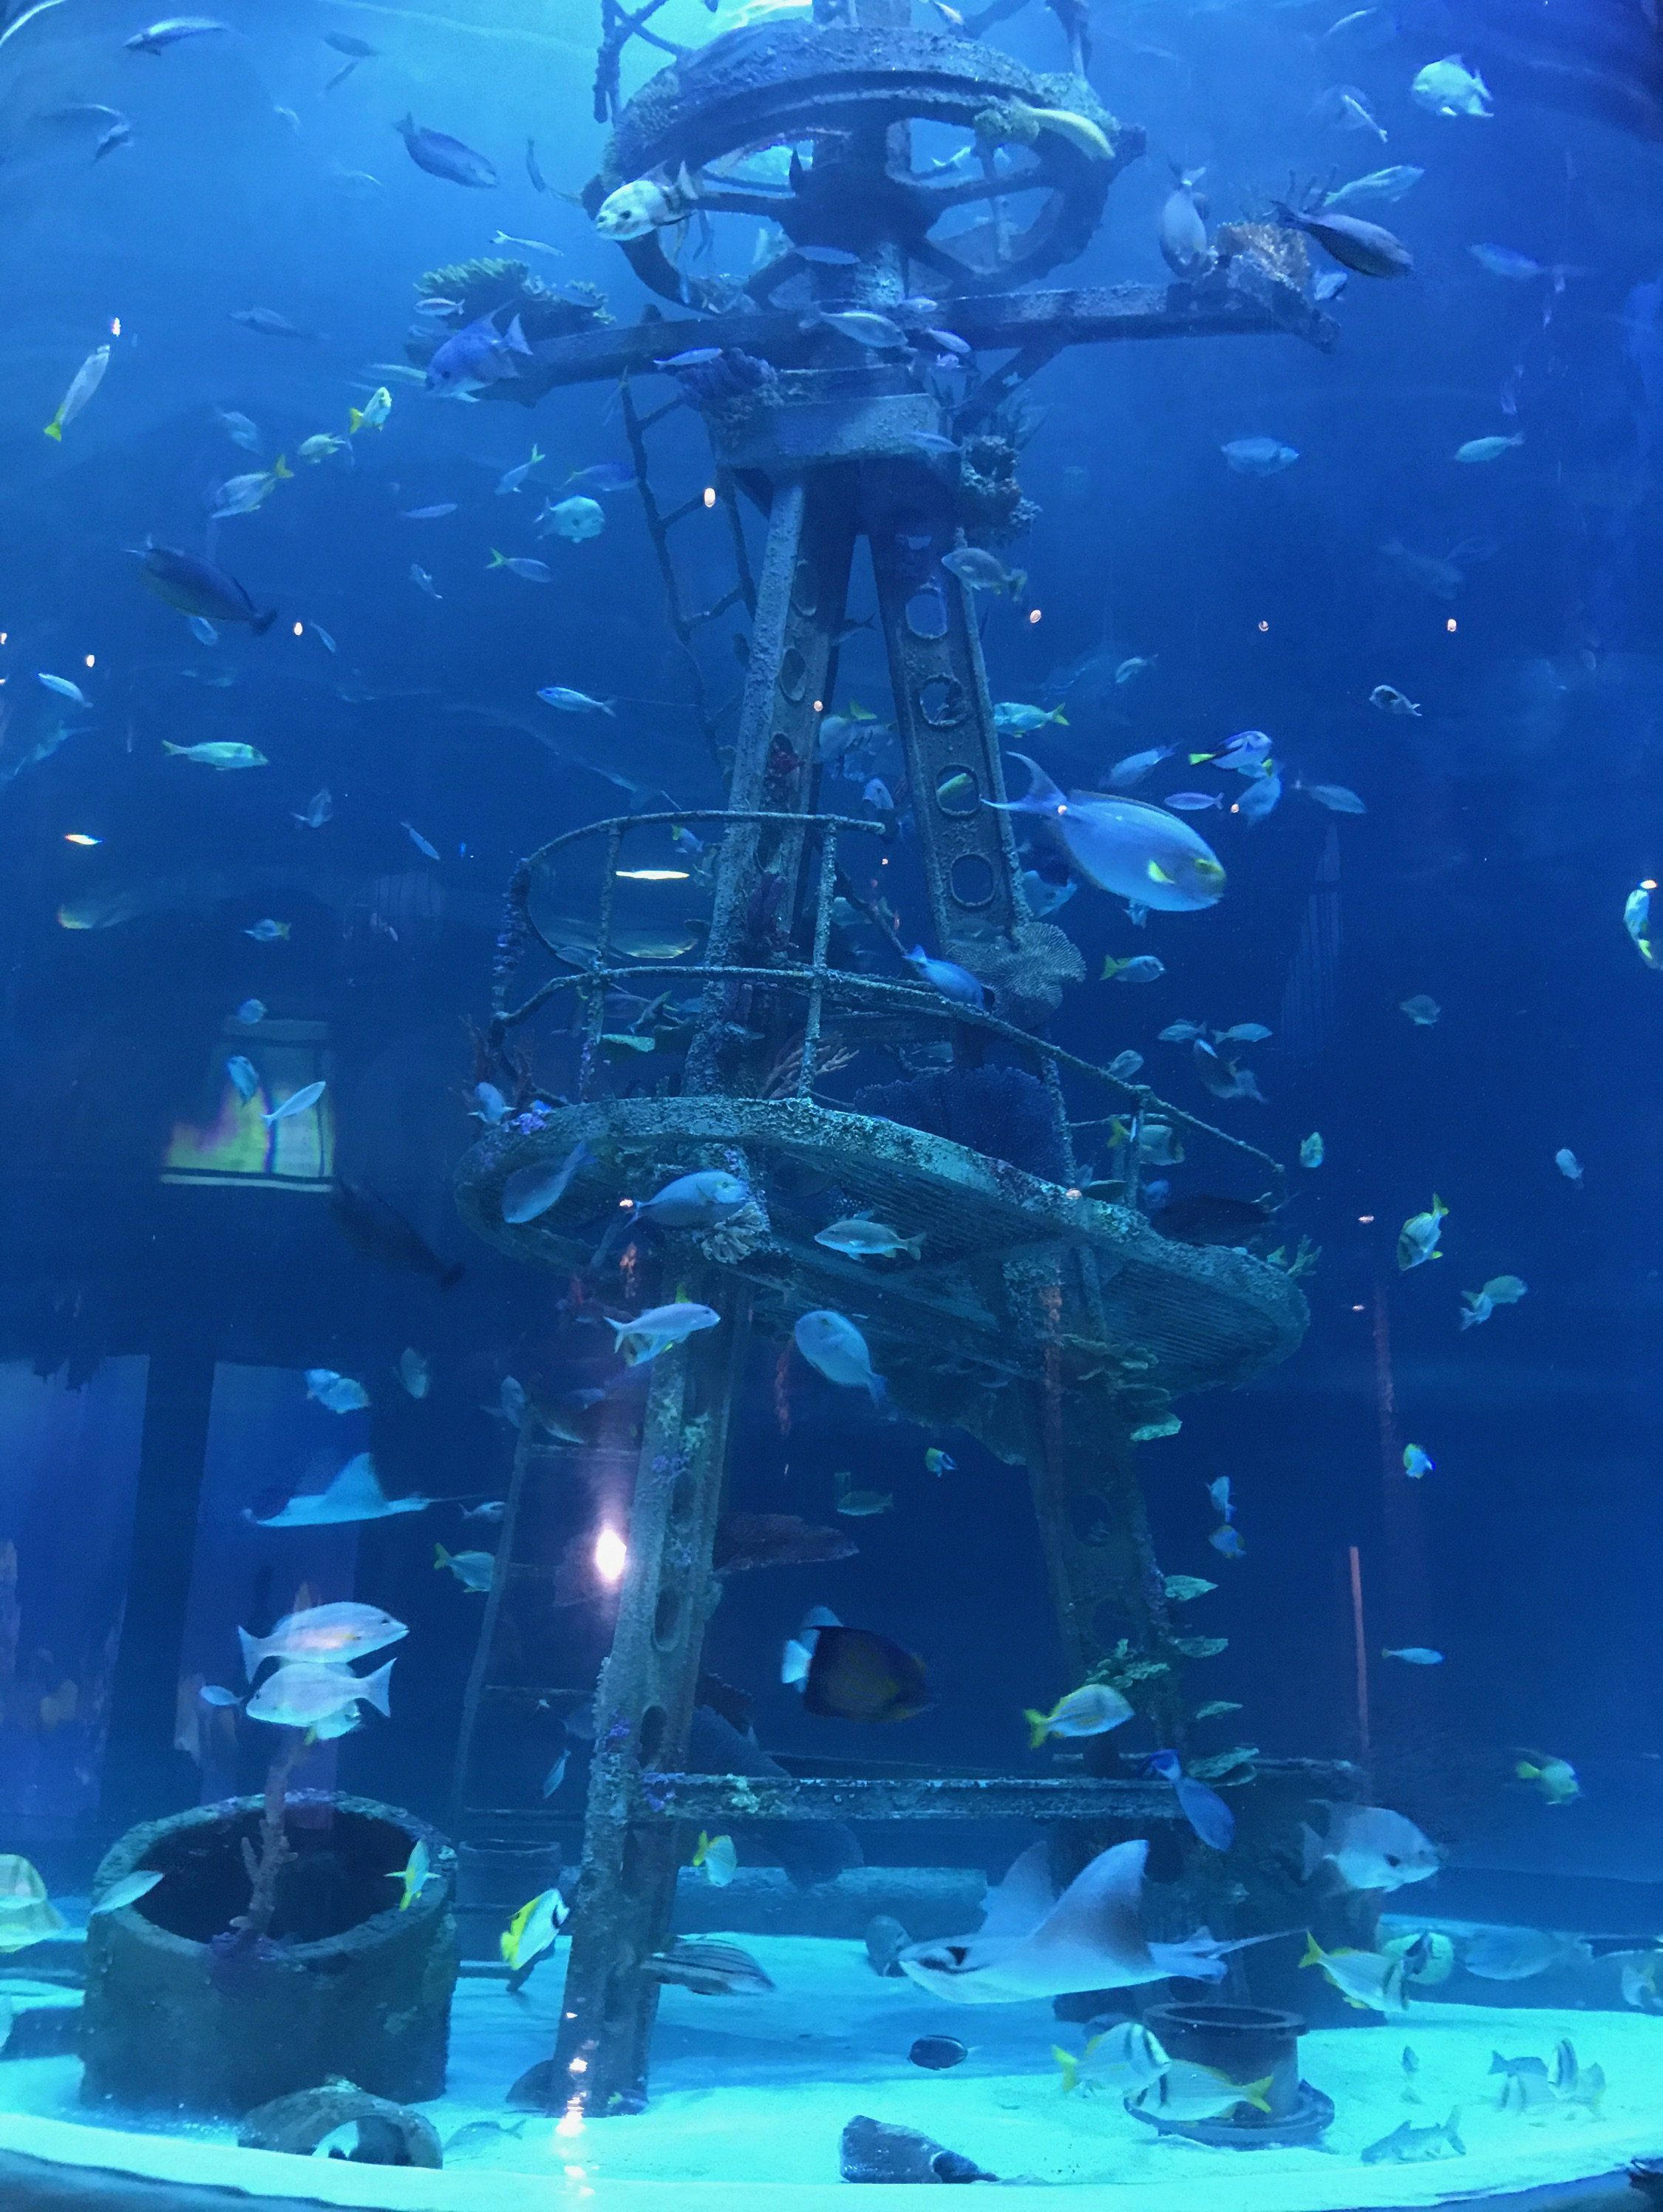 Springfield Mo The Largest Fish And Wildlife Exhibit In The World Opens Up This Week In Sp Branson Missouri Vacation Branson Vacation Springfield Missouri